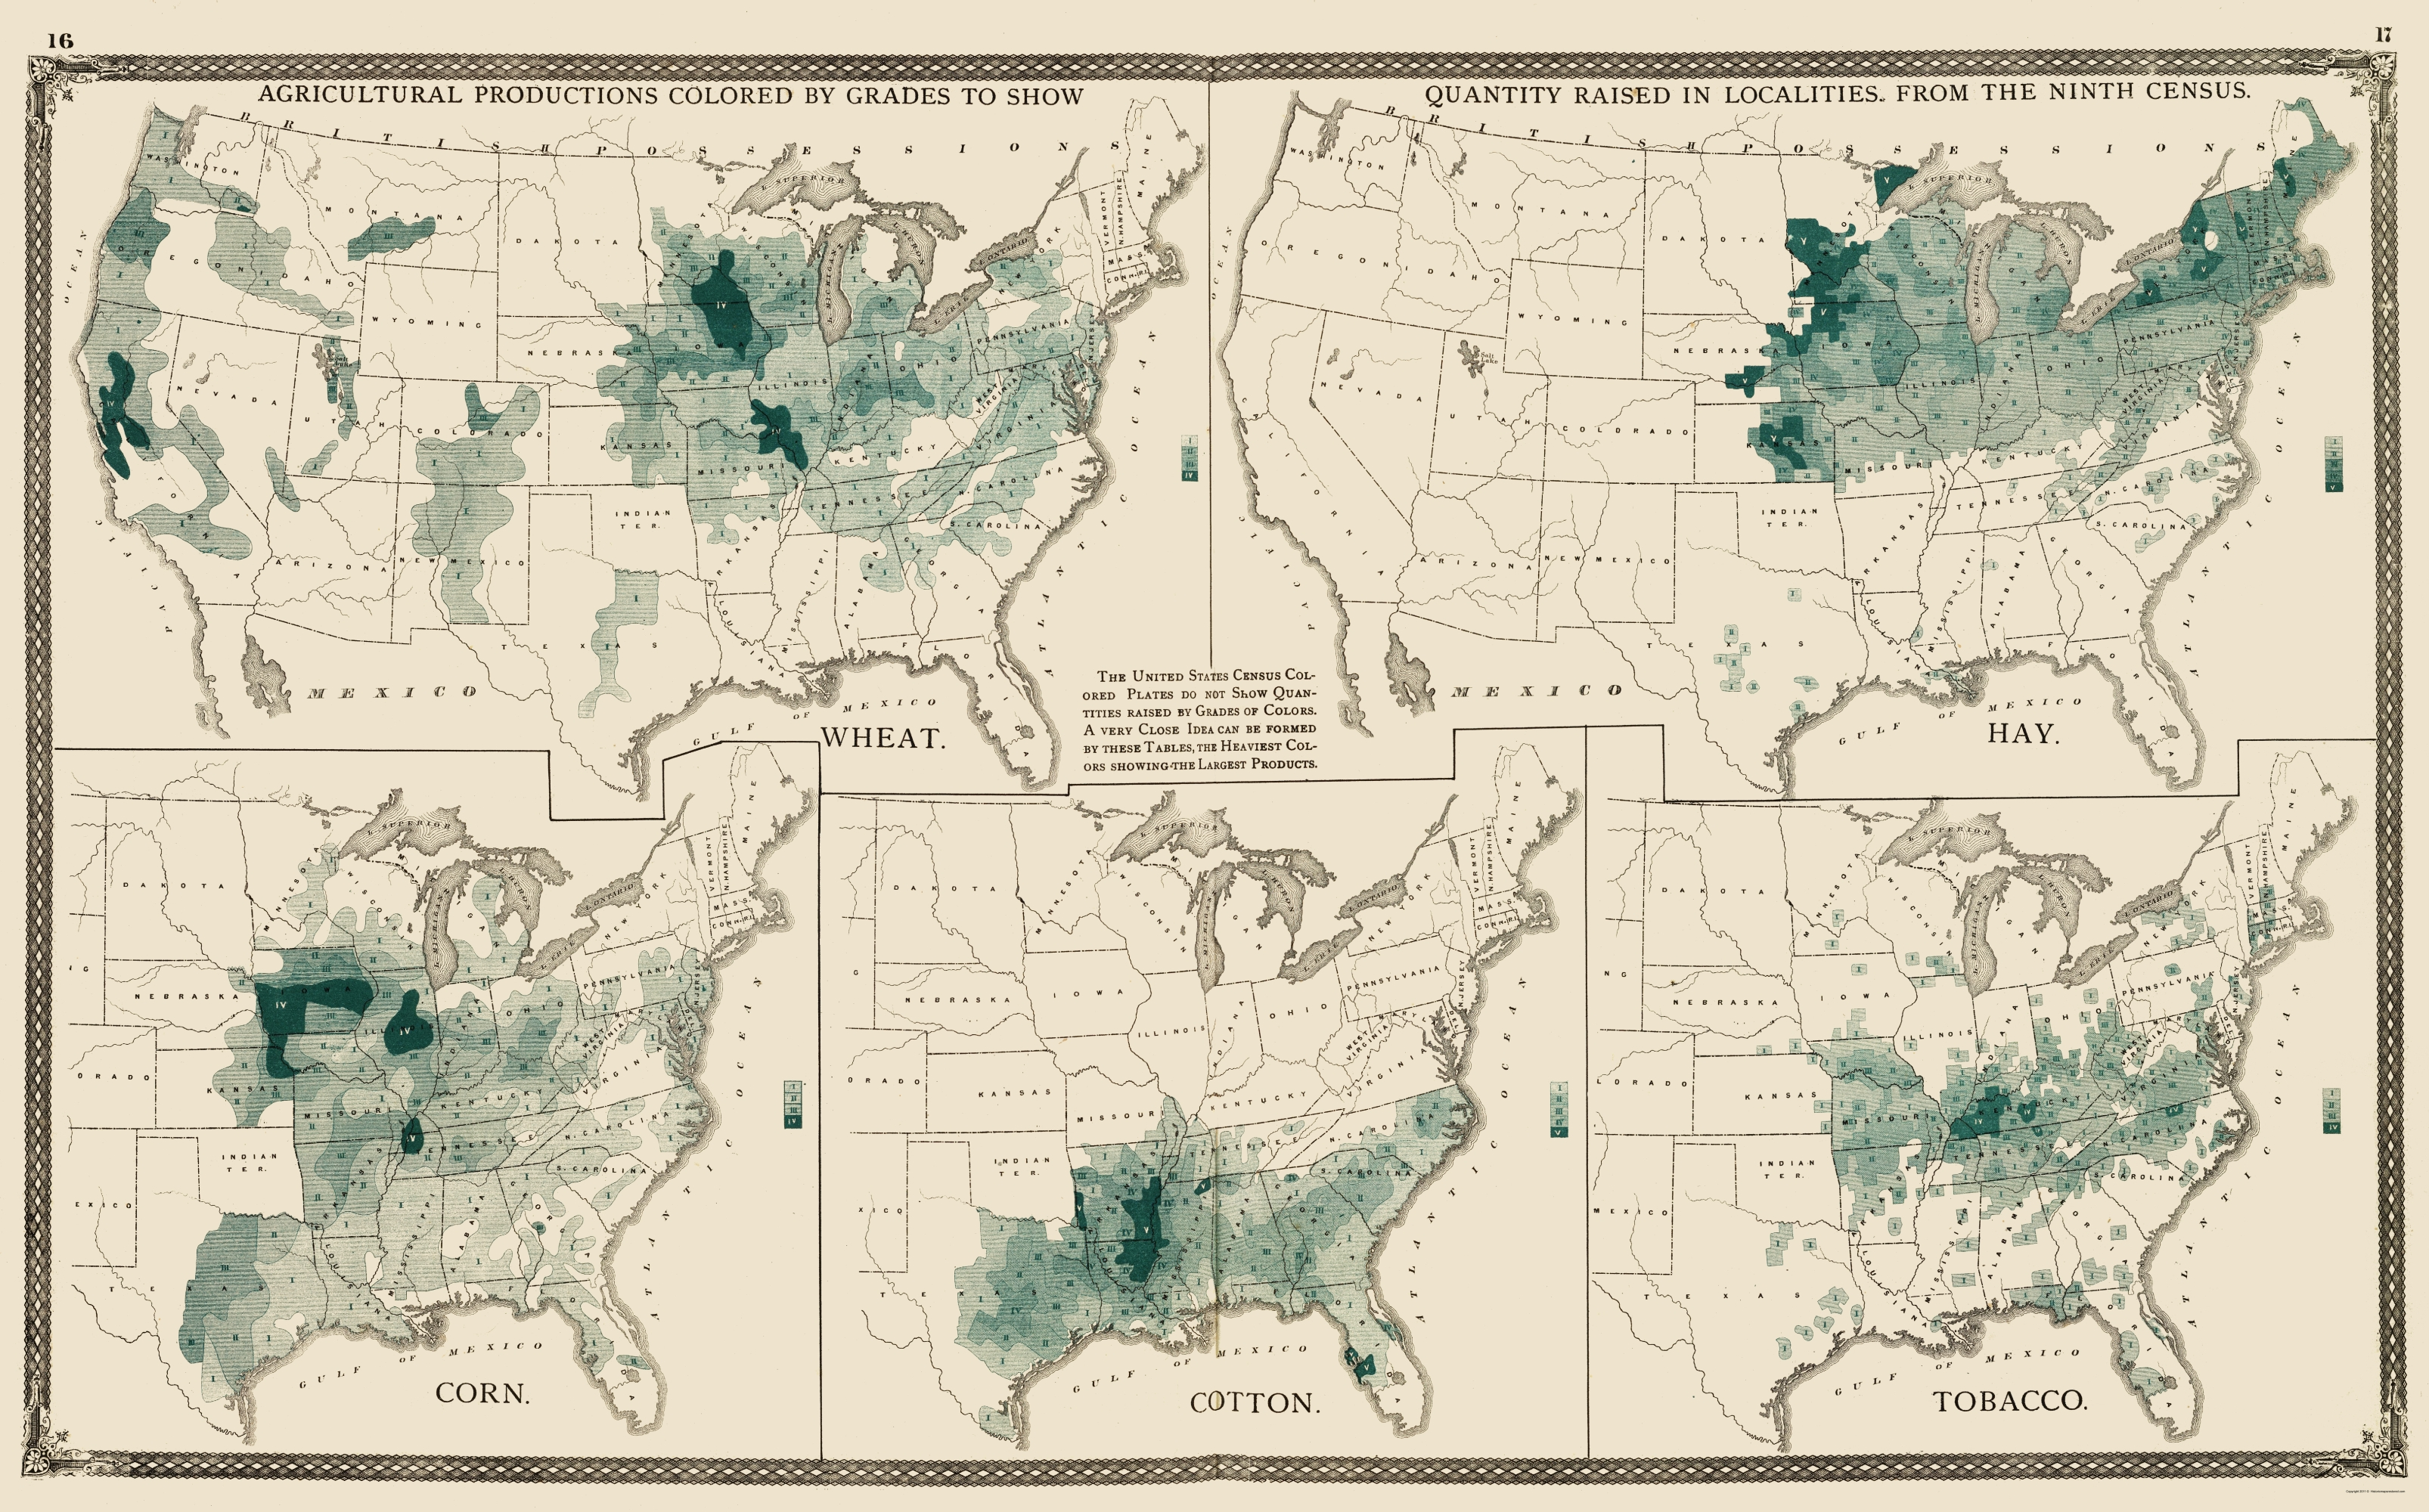 Old State Map US Agriculture Production Baskin - Us agriculture map